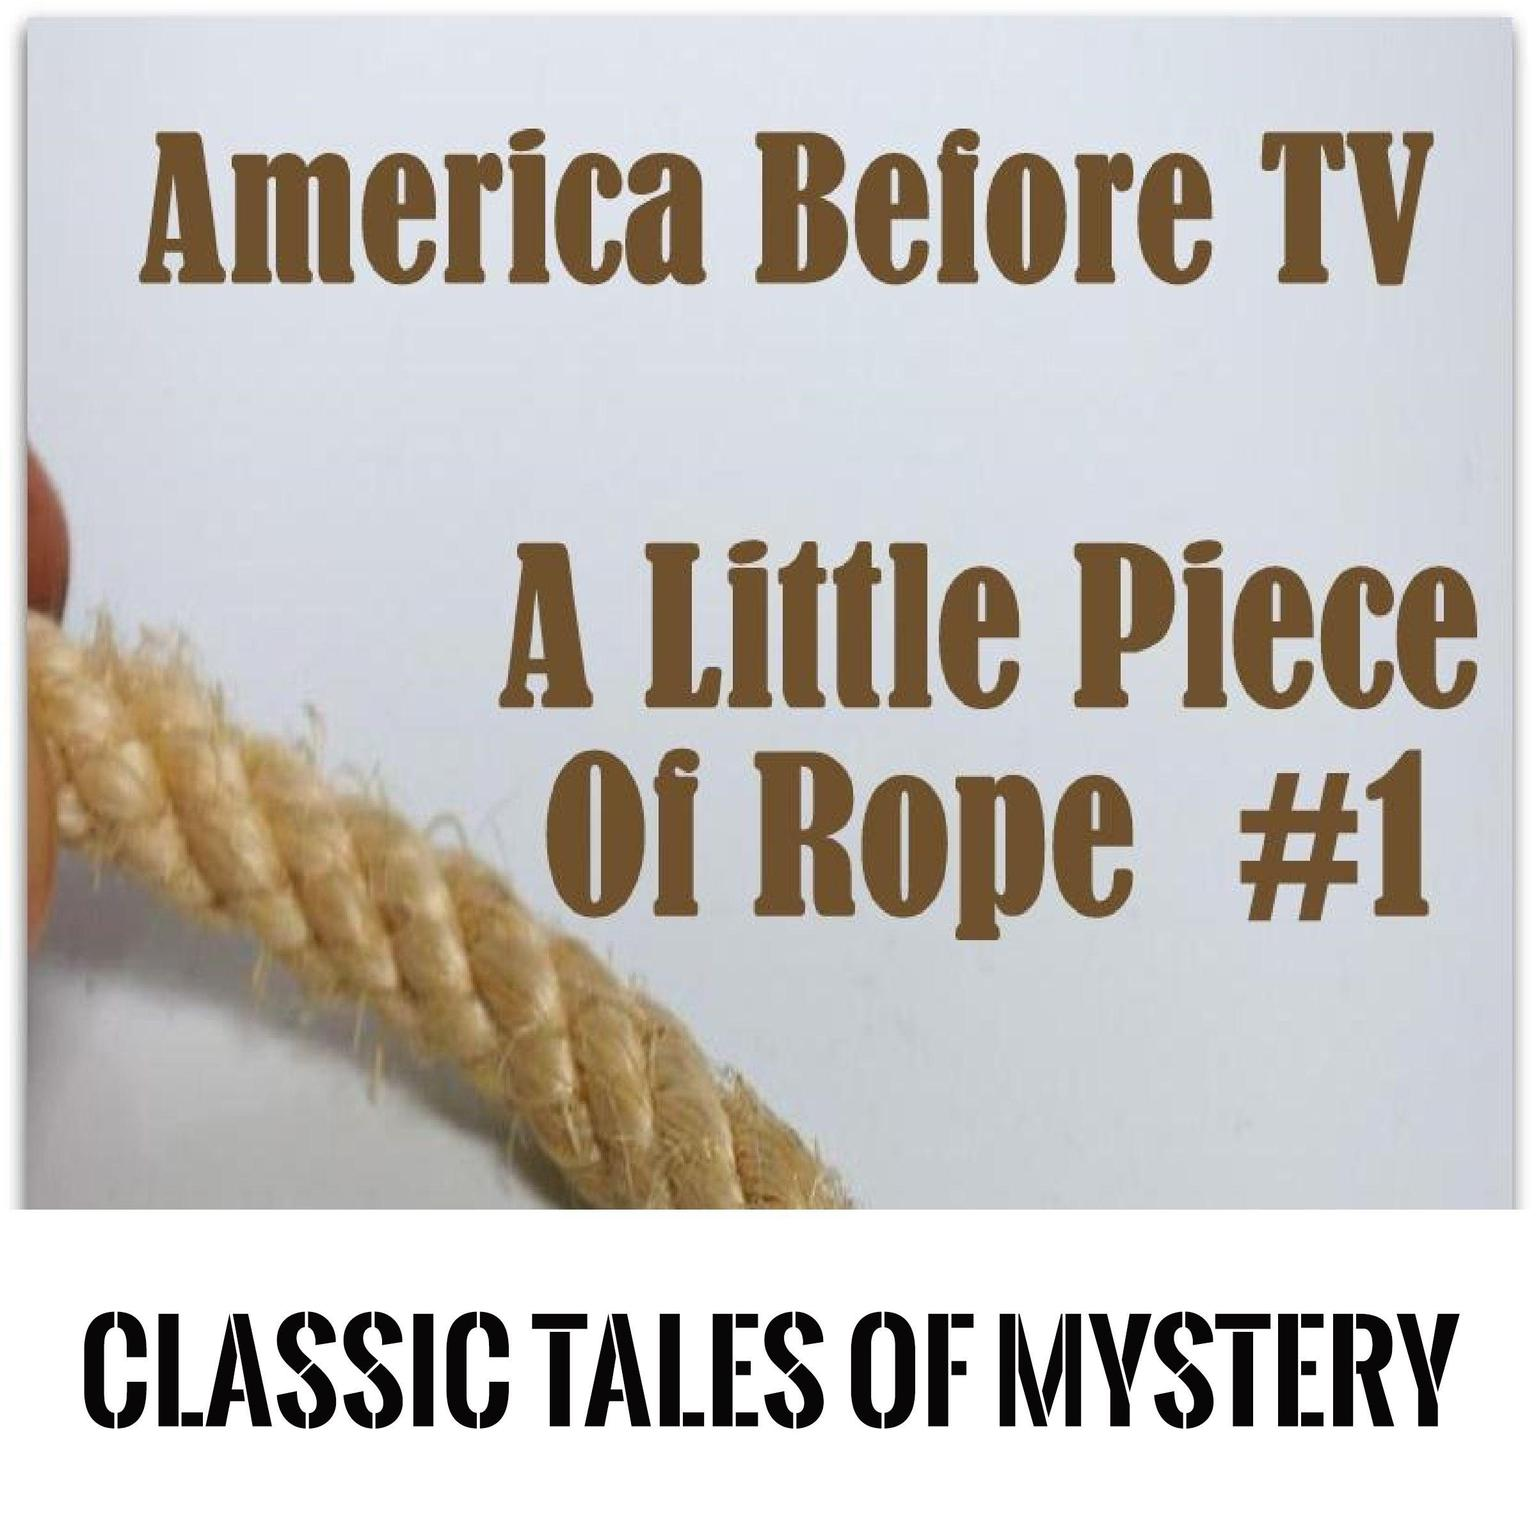 Printable America Before TV - A Little Piece Of Rope  #1 Audiobook Cover Art